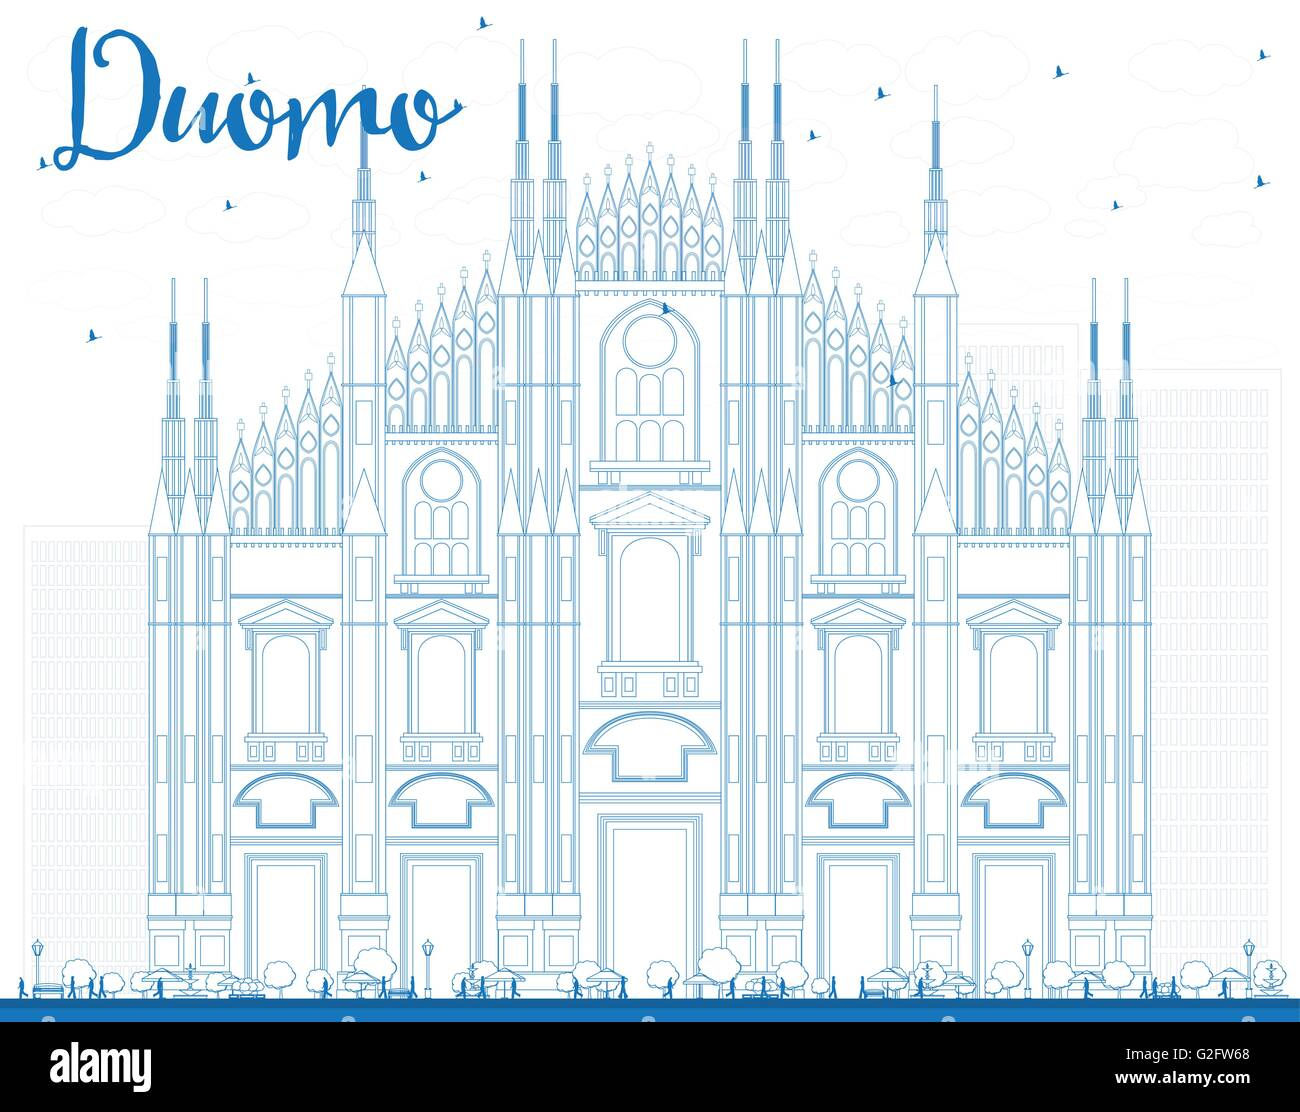 Outline Duomo in Blue Color. Milan. Italy. Vector Illustration. Tourism Concept with Historic Building. Image for - Stock Vector